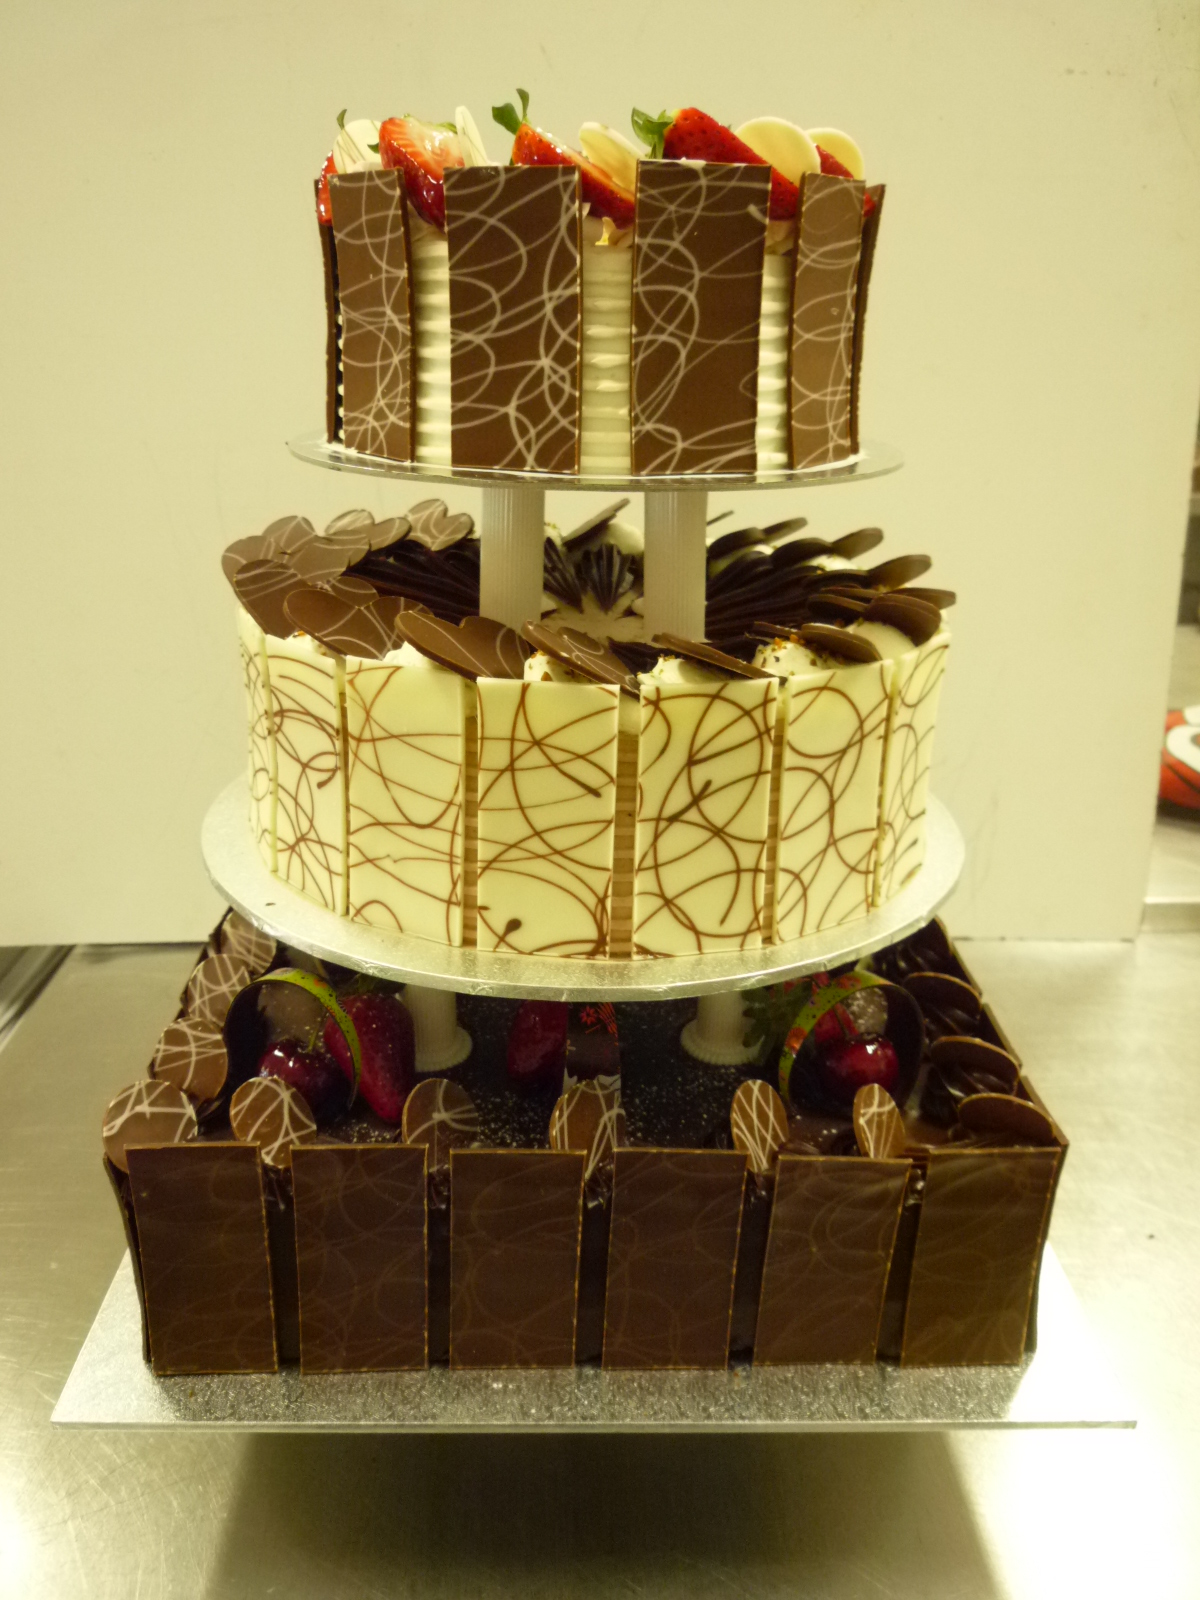 3 Tier Mud Cake Italian Torte Strawberry Gateau